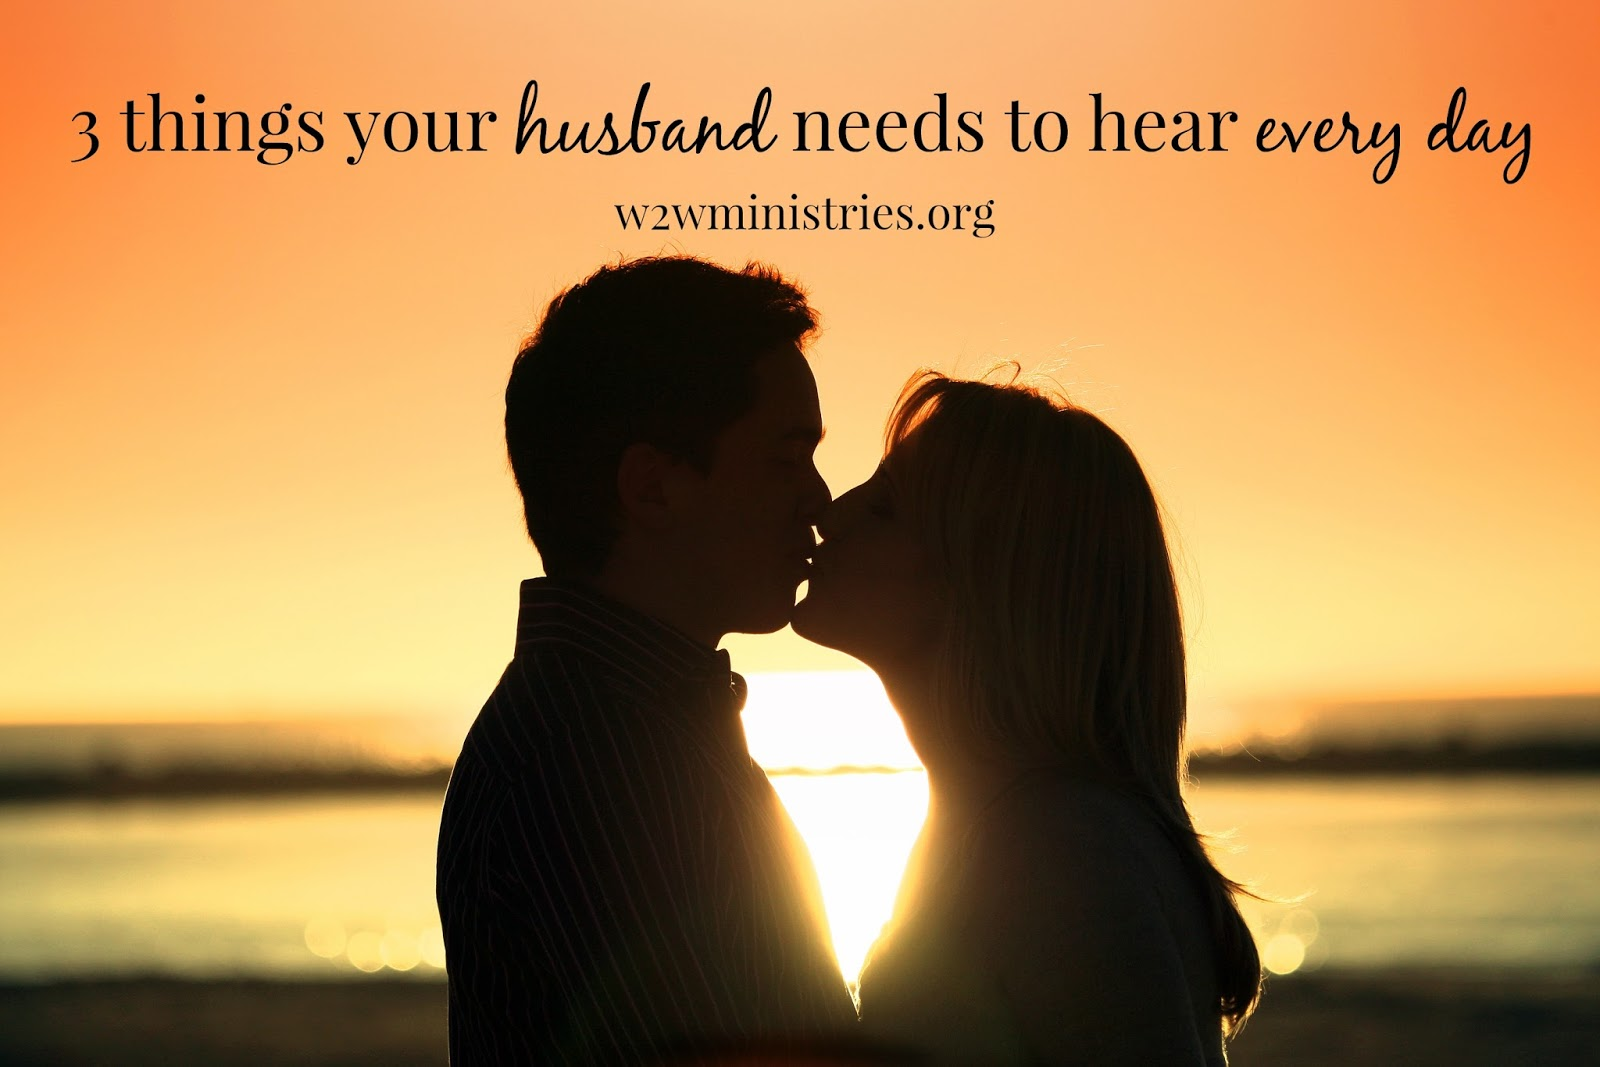 3 things your husband needs to hear every day #marriage #husband #wife